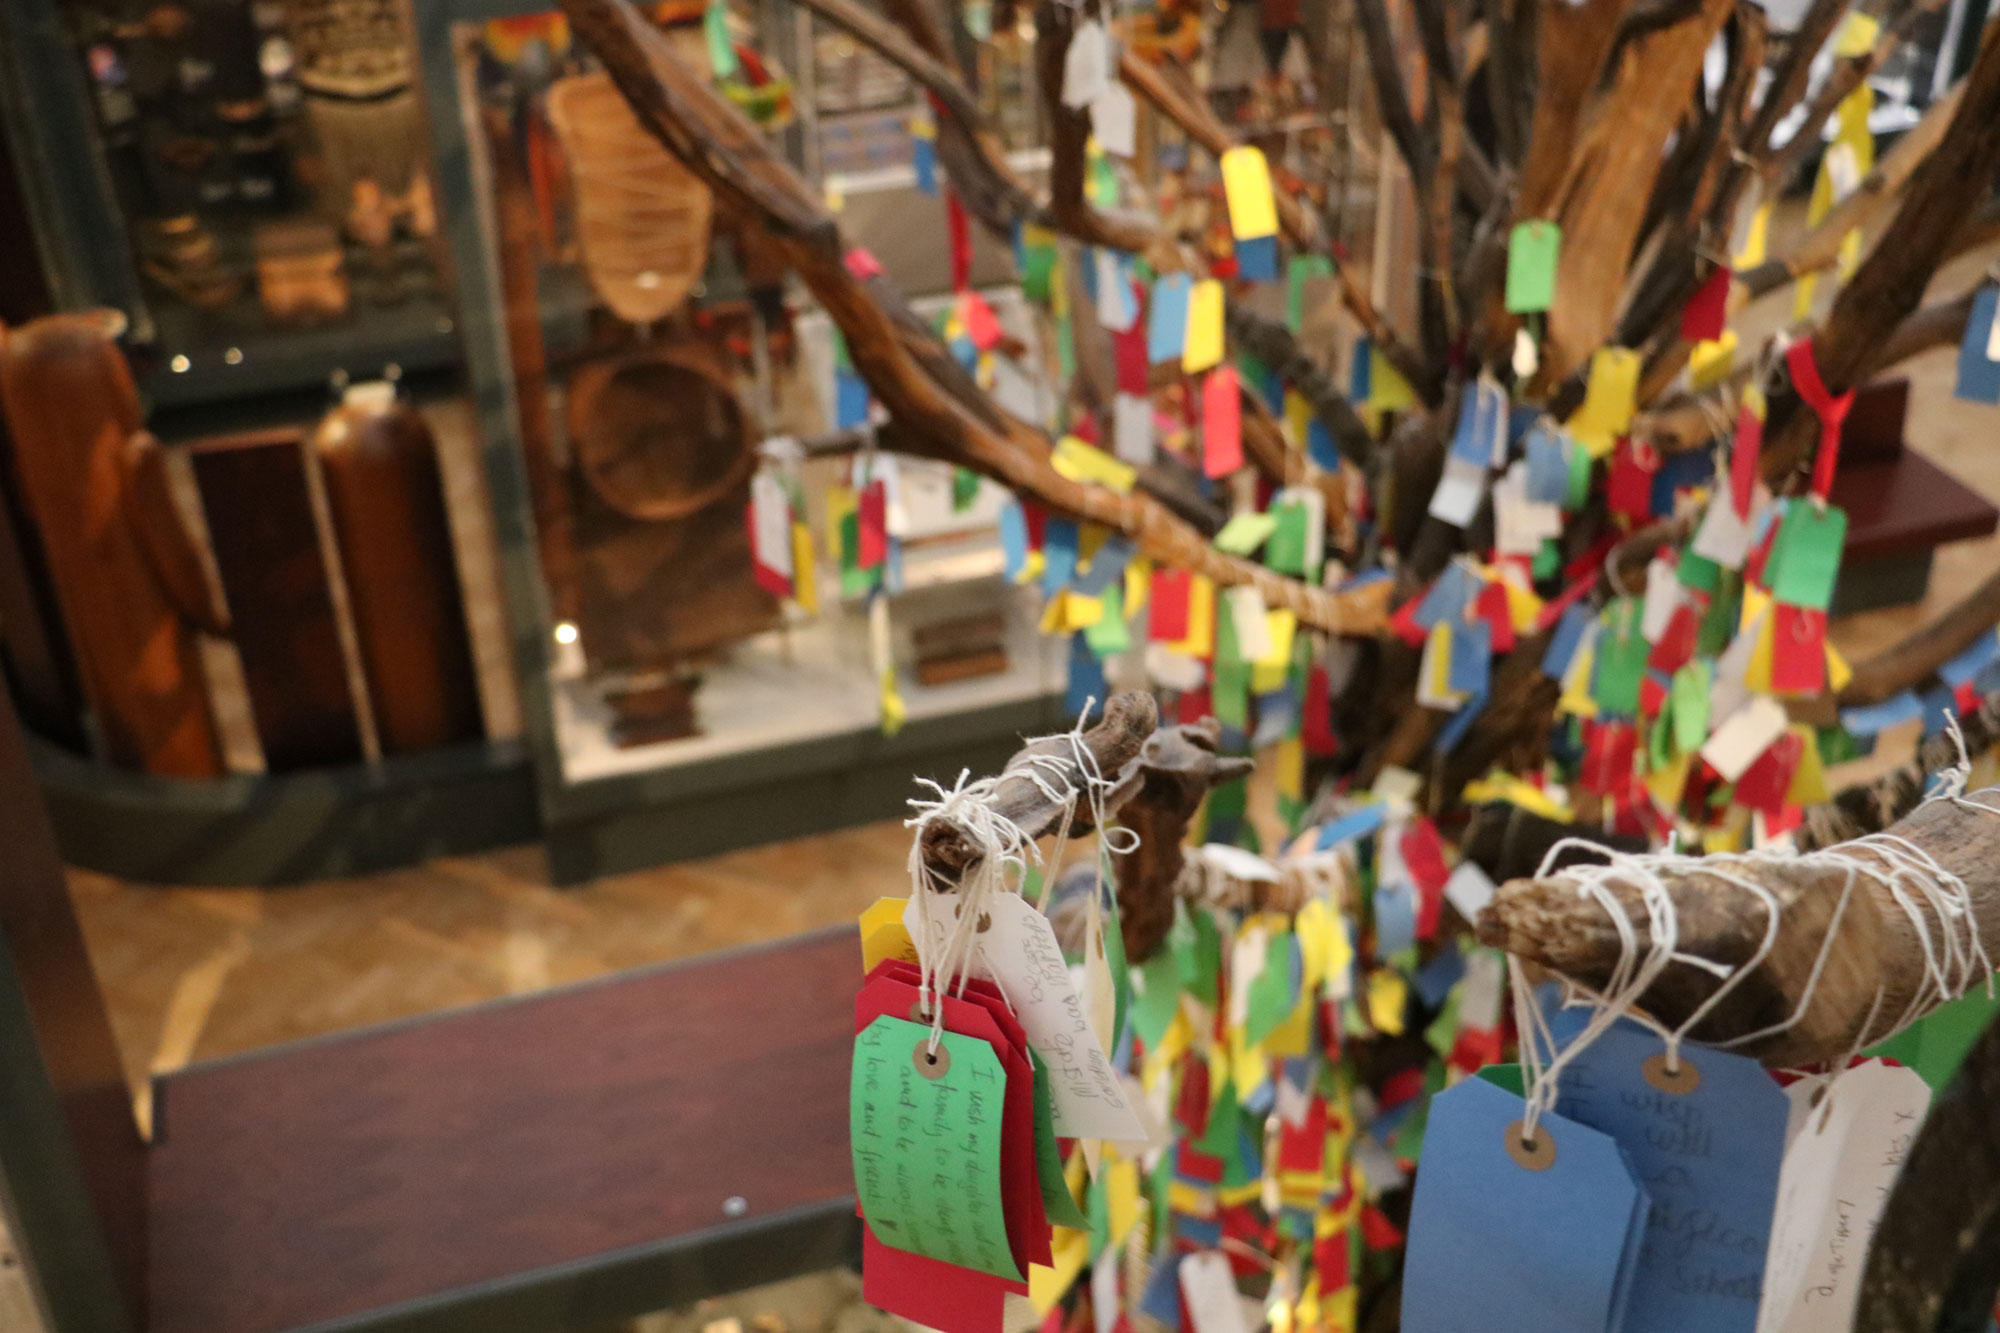 A fake tree in a gallery with many colourful labels hanging off of the branches by strings.